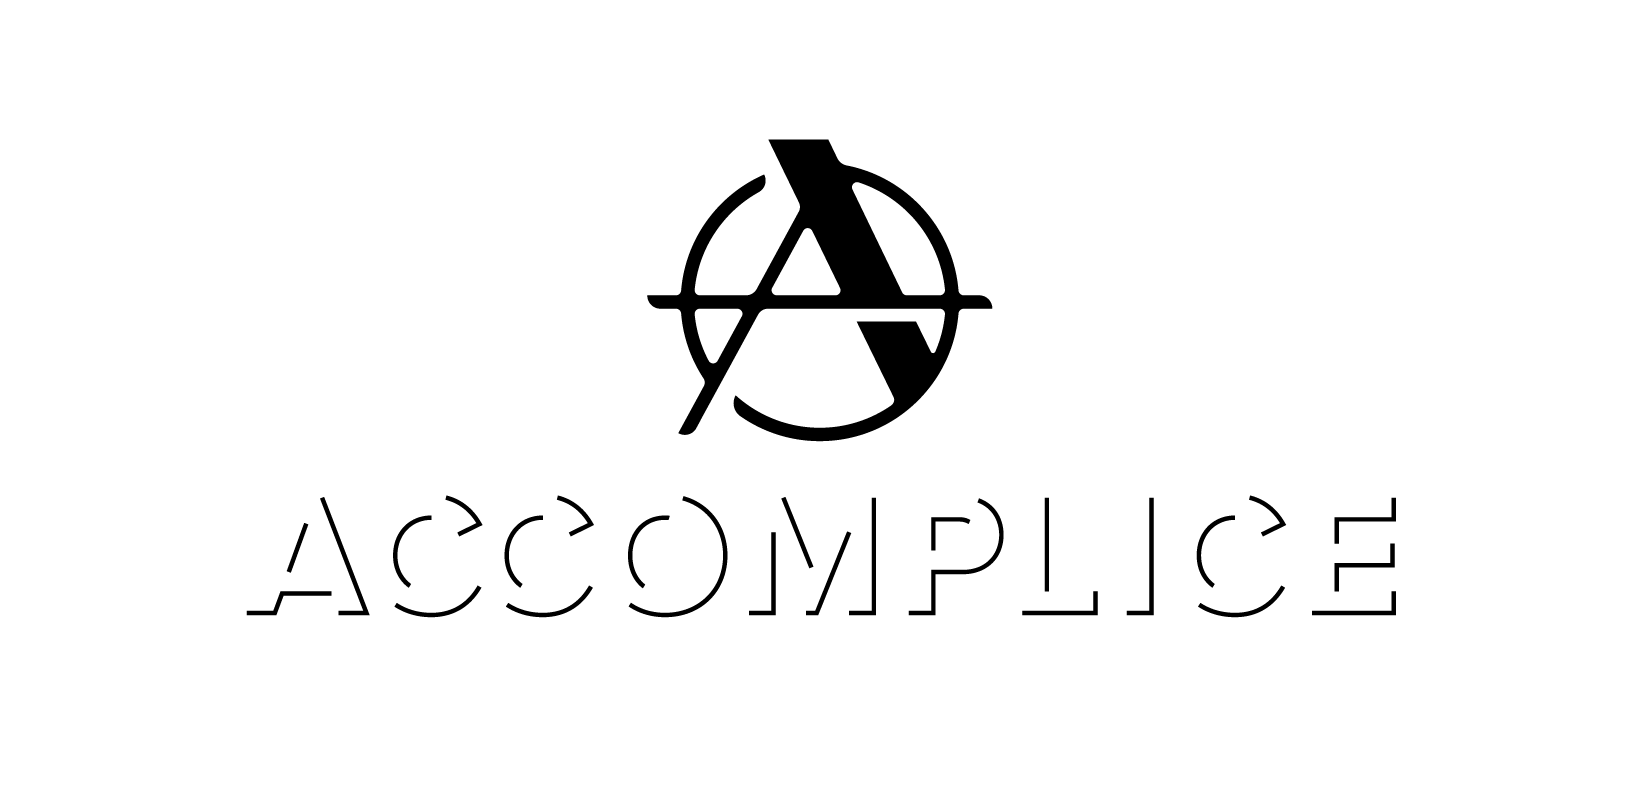 Accomplice